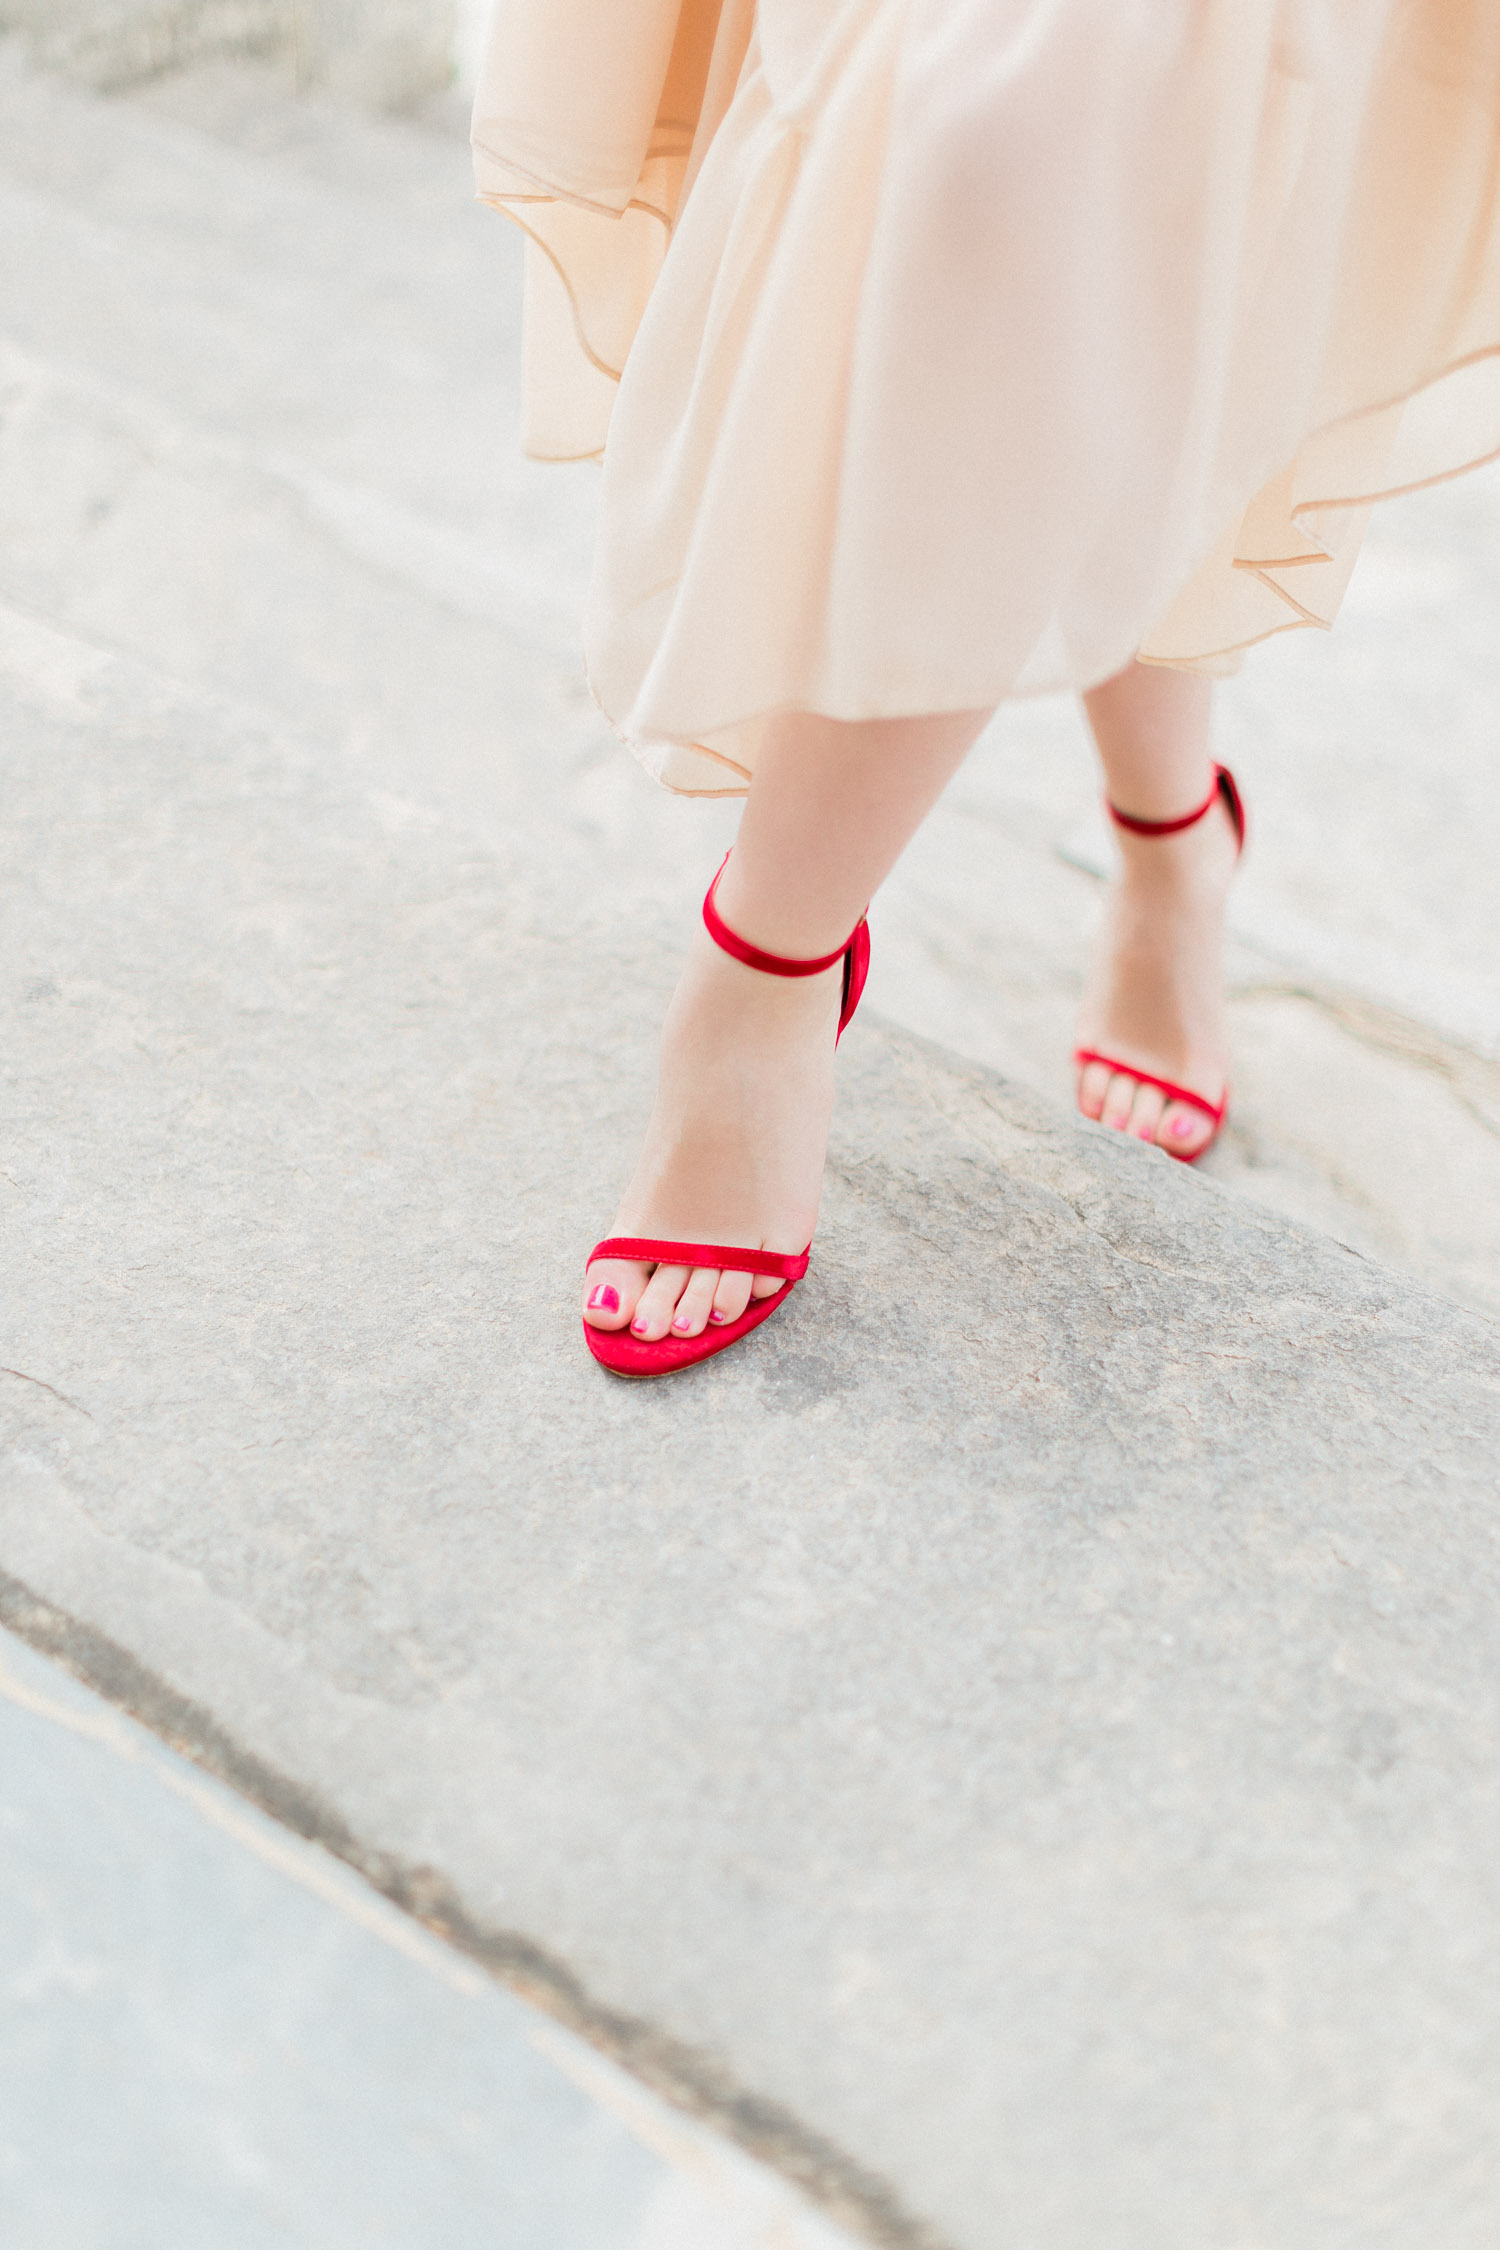 Steve Madden red high heels walk while an engagement shooting at Corfu island, Greece